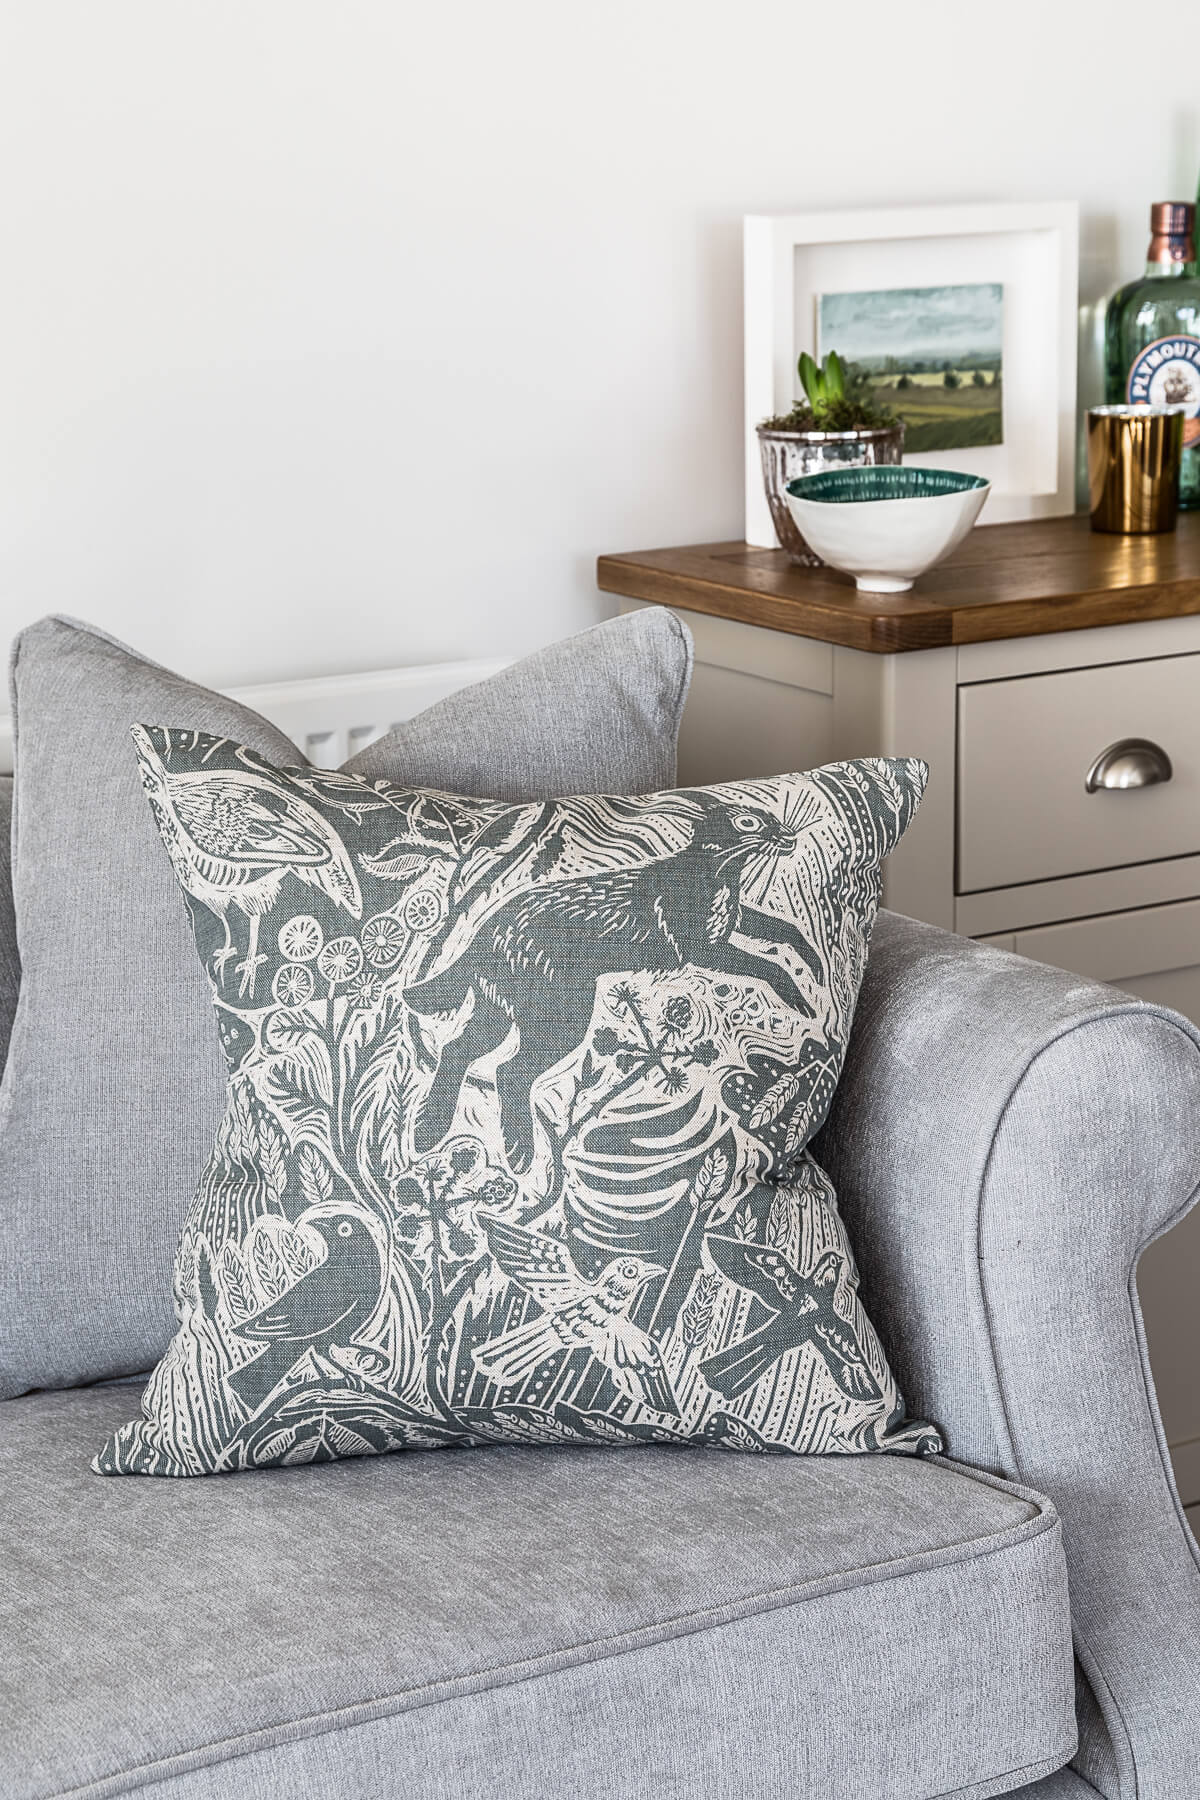 Contemporary country sitting room with cushion in Mark Hearld fabric